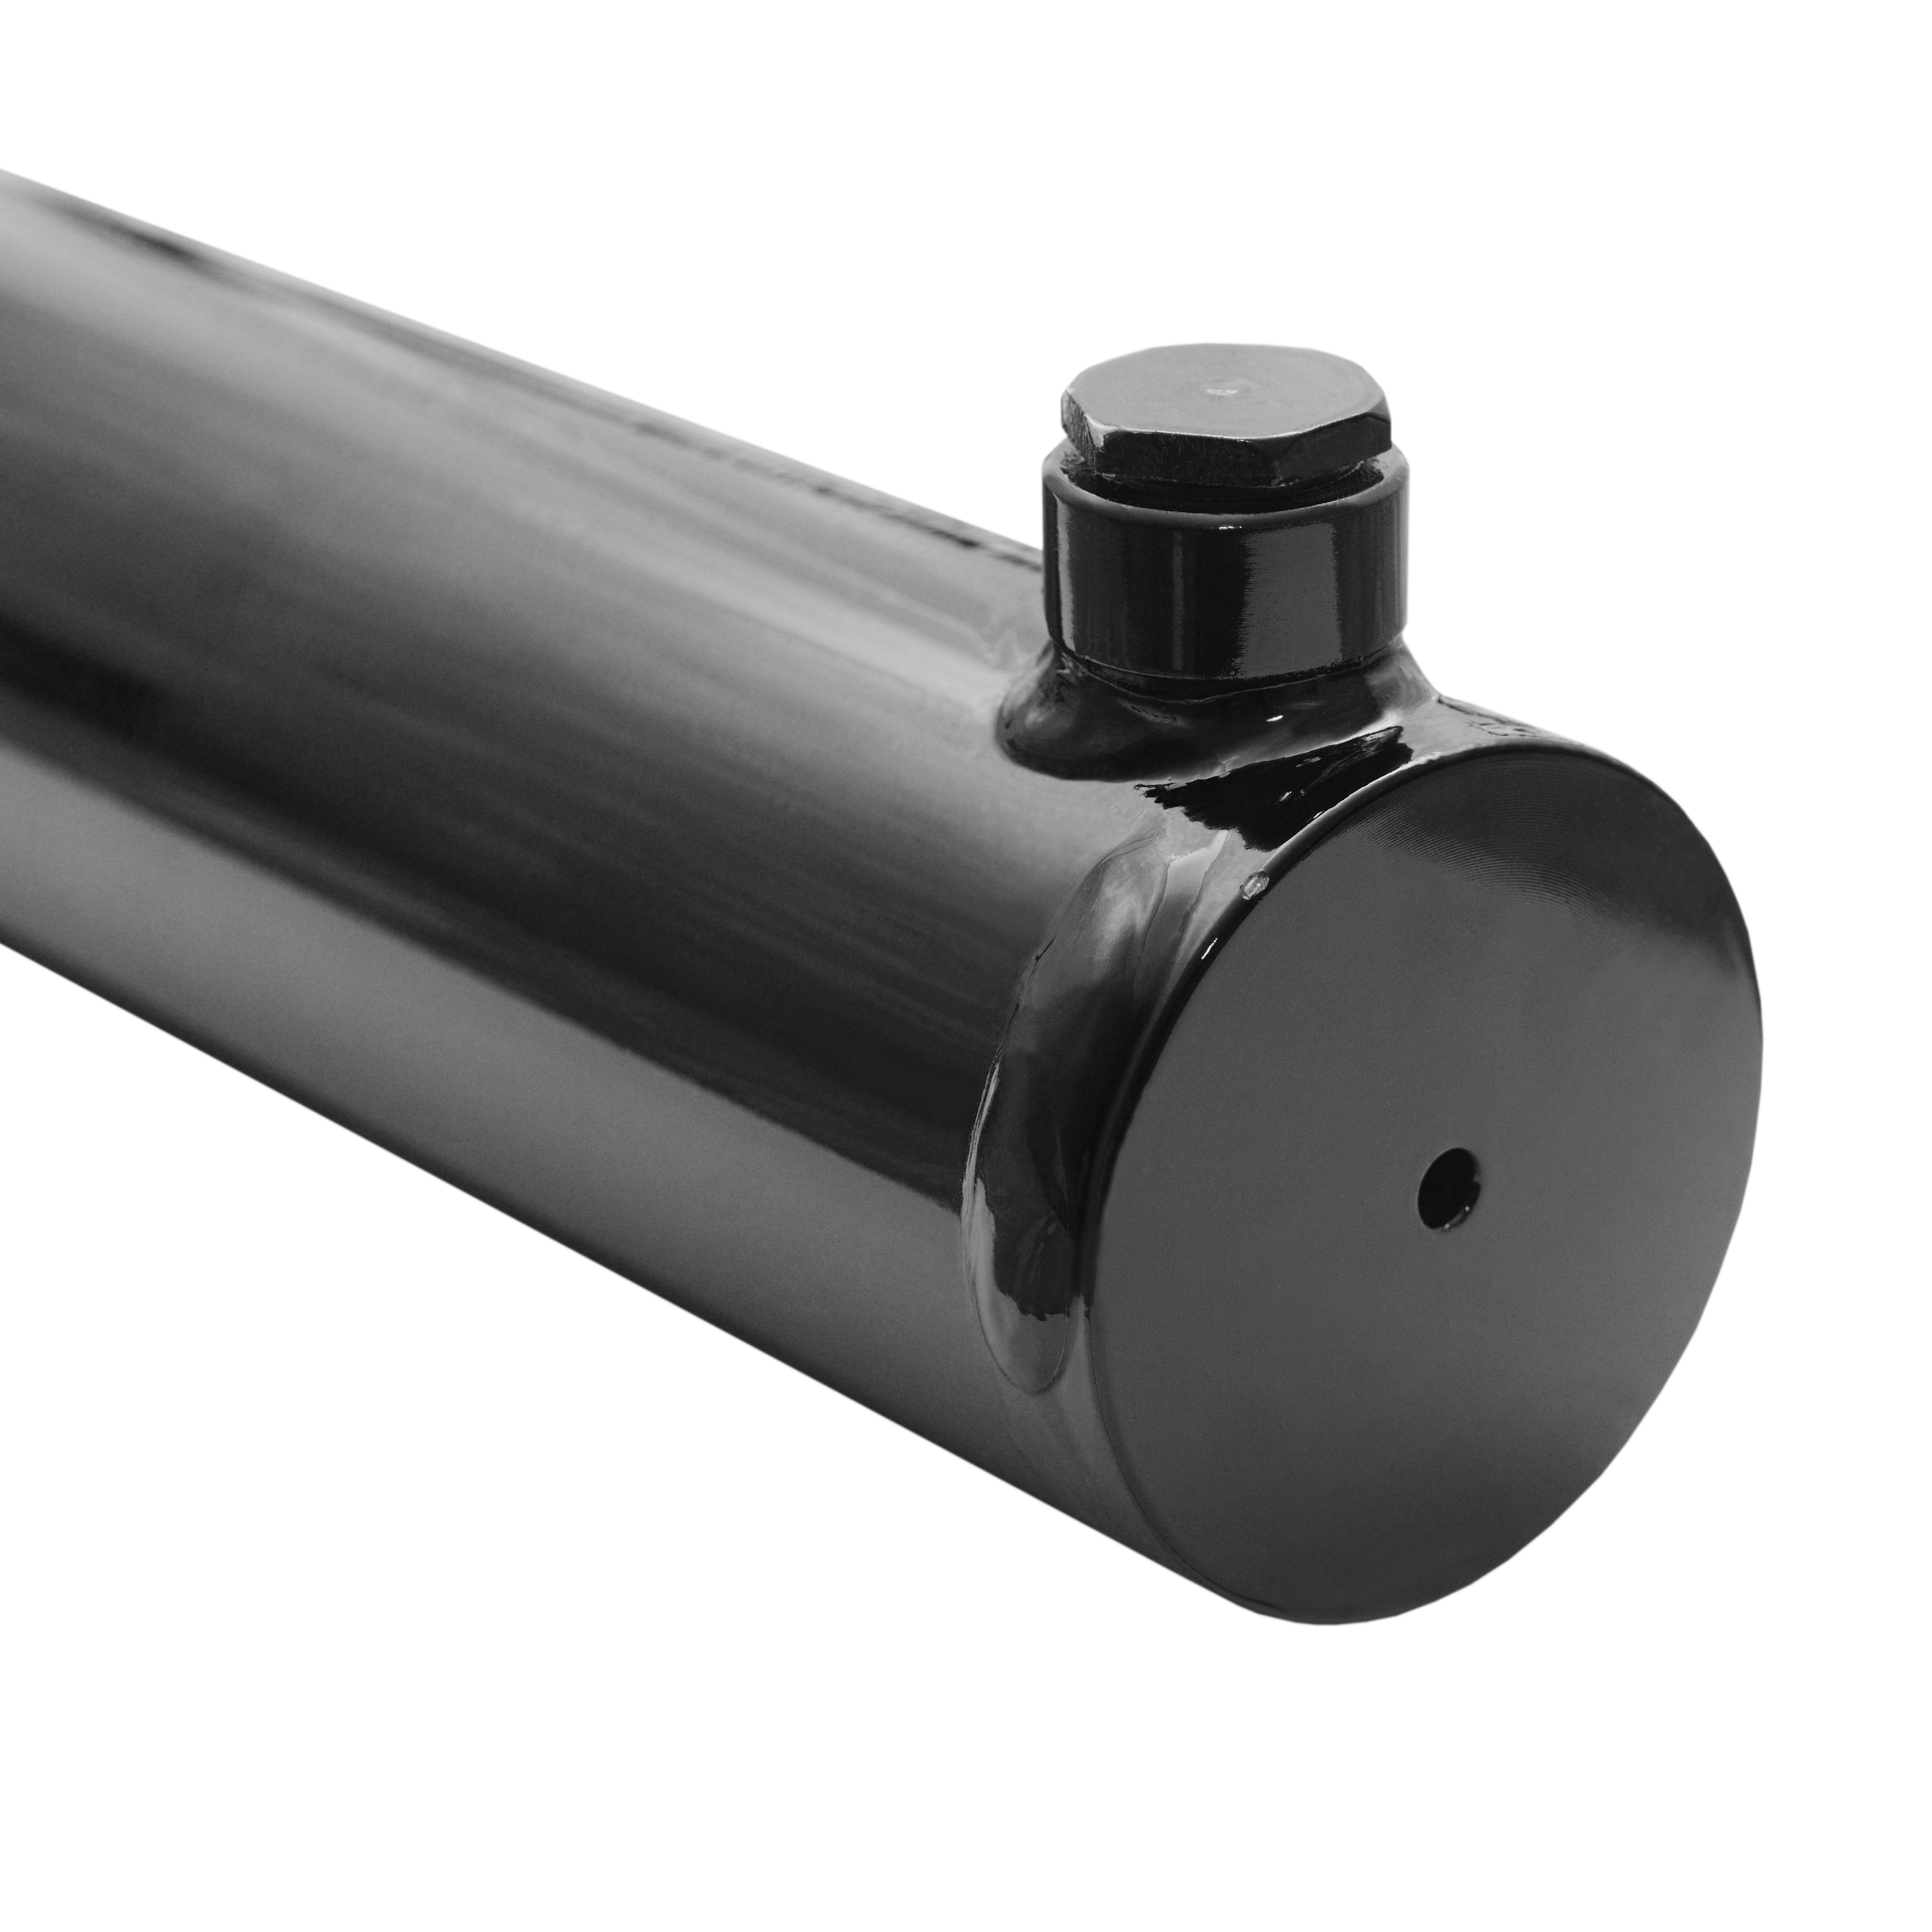 2 bore x 9 stroke hydraulic cylinder, welded universal double acting cylinder   Magister Hydraulics